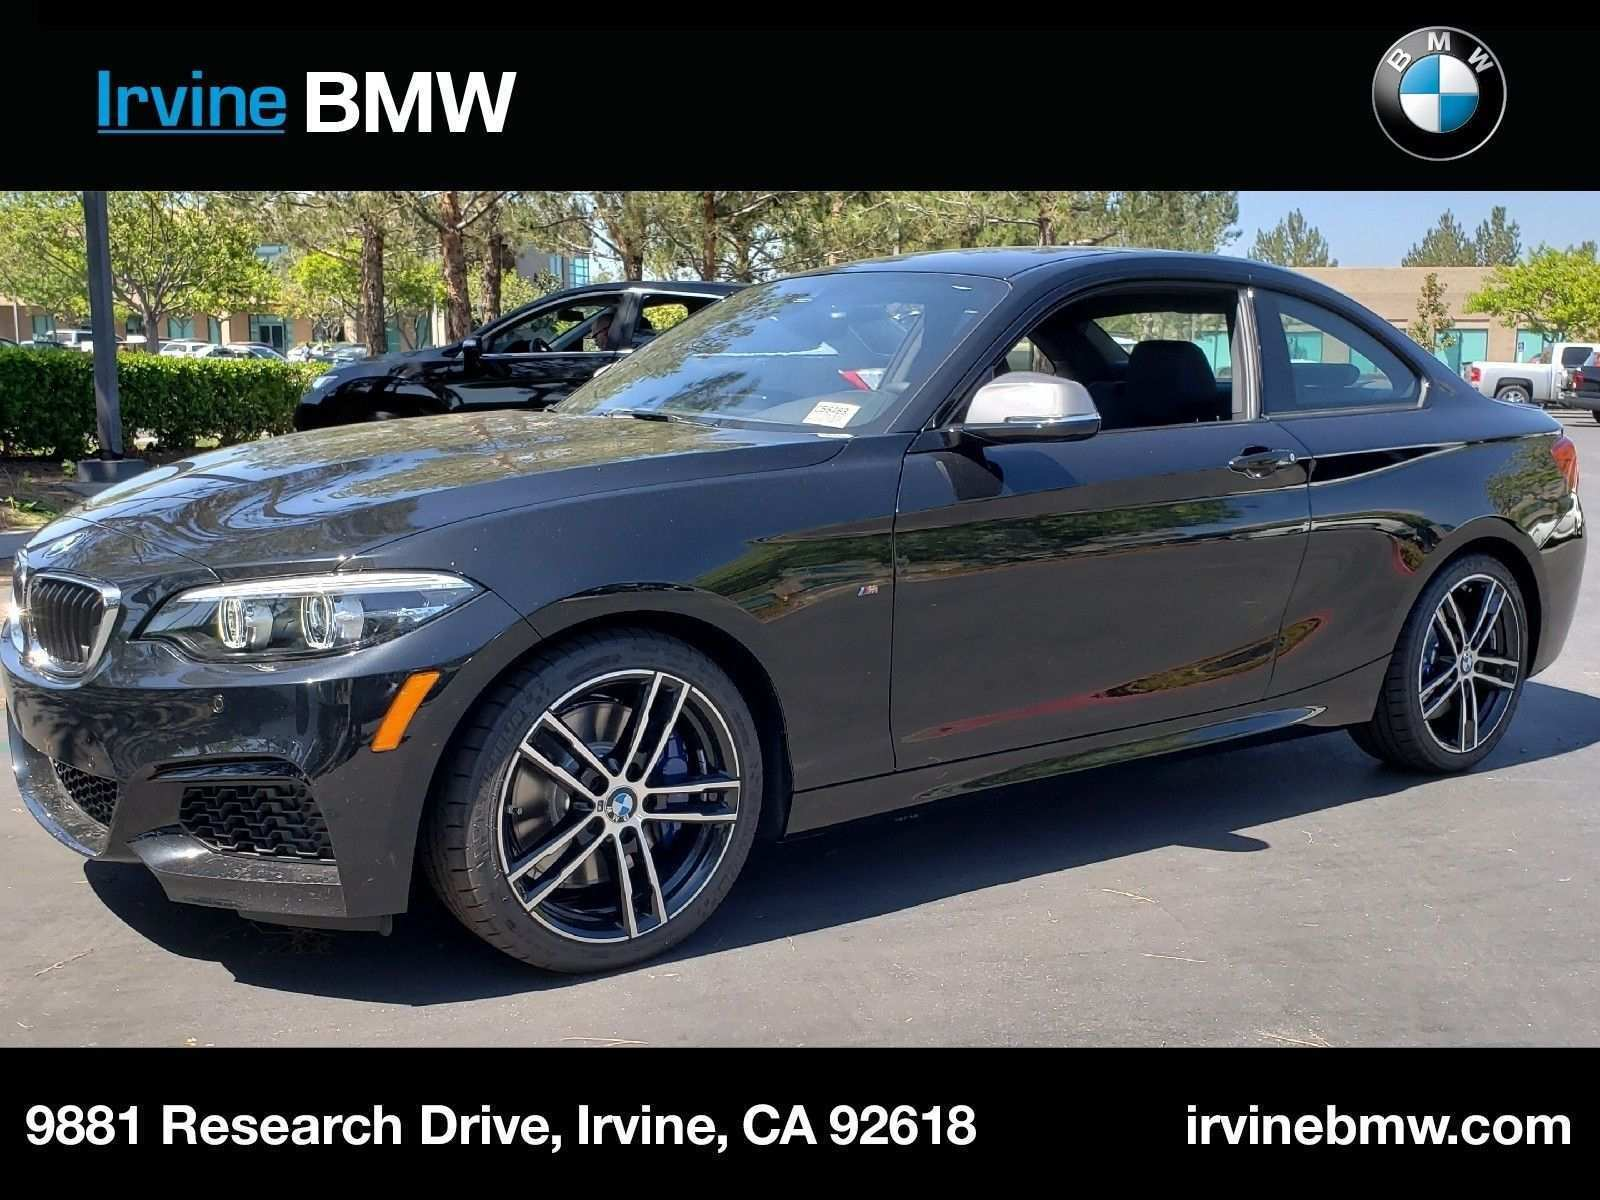 80 The 2019 Bmw 5500 Hd Rumors For 2019 Bmw 5500 Hd Car Review